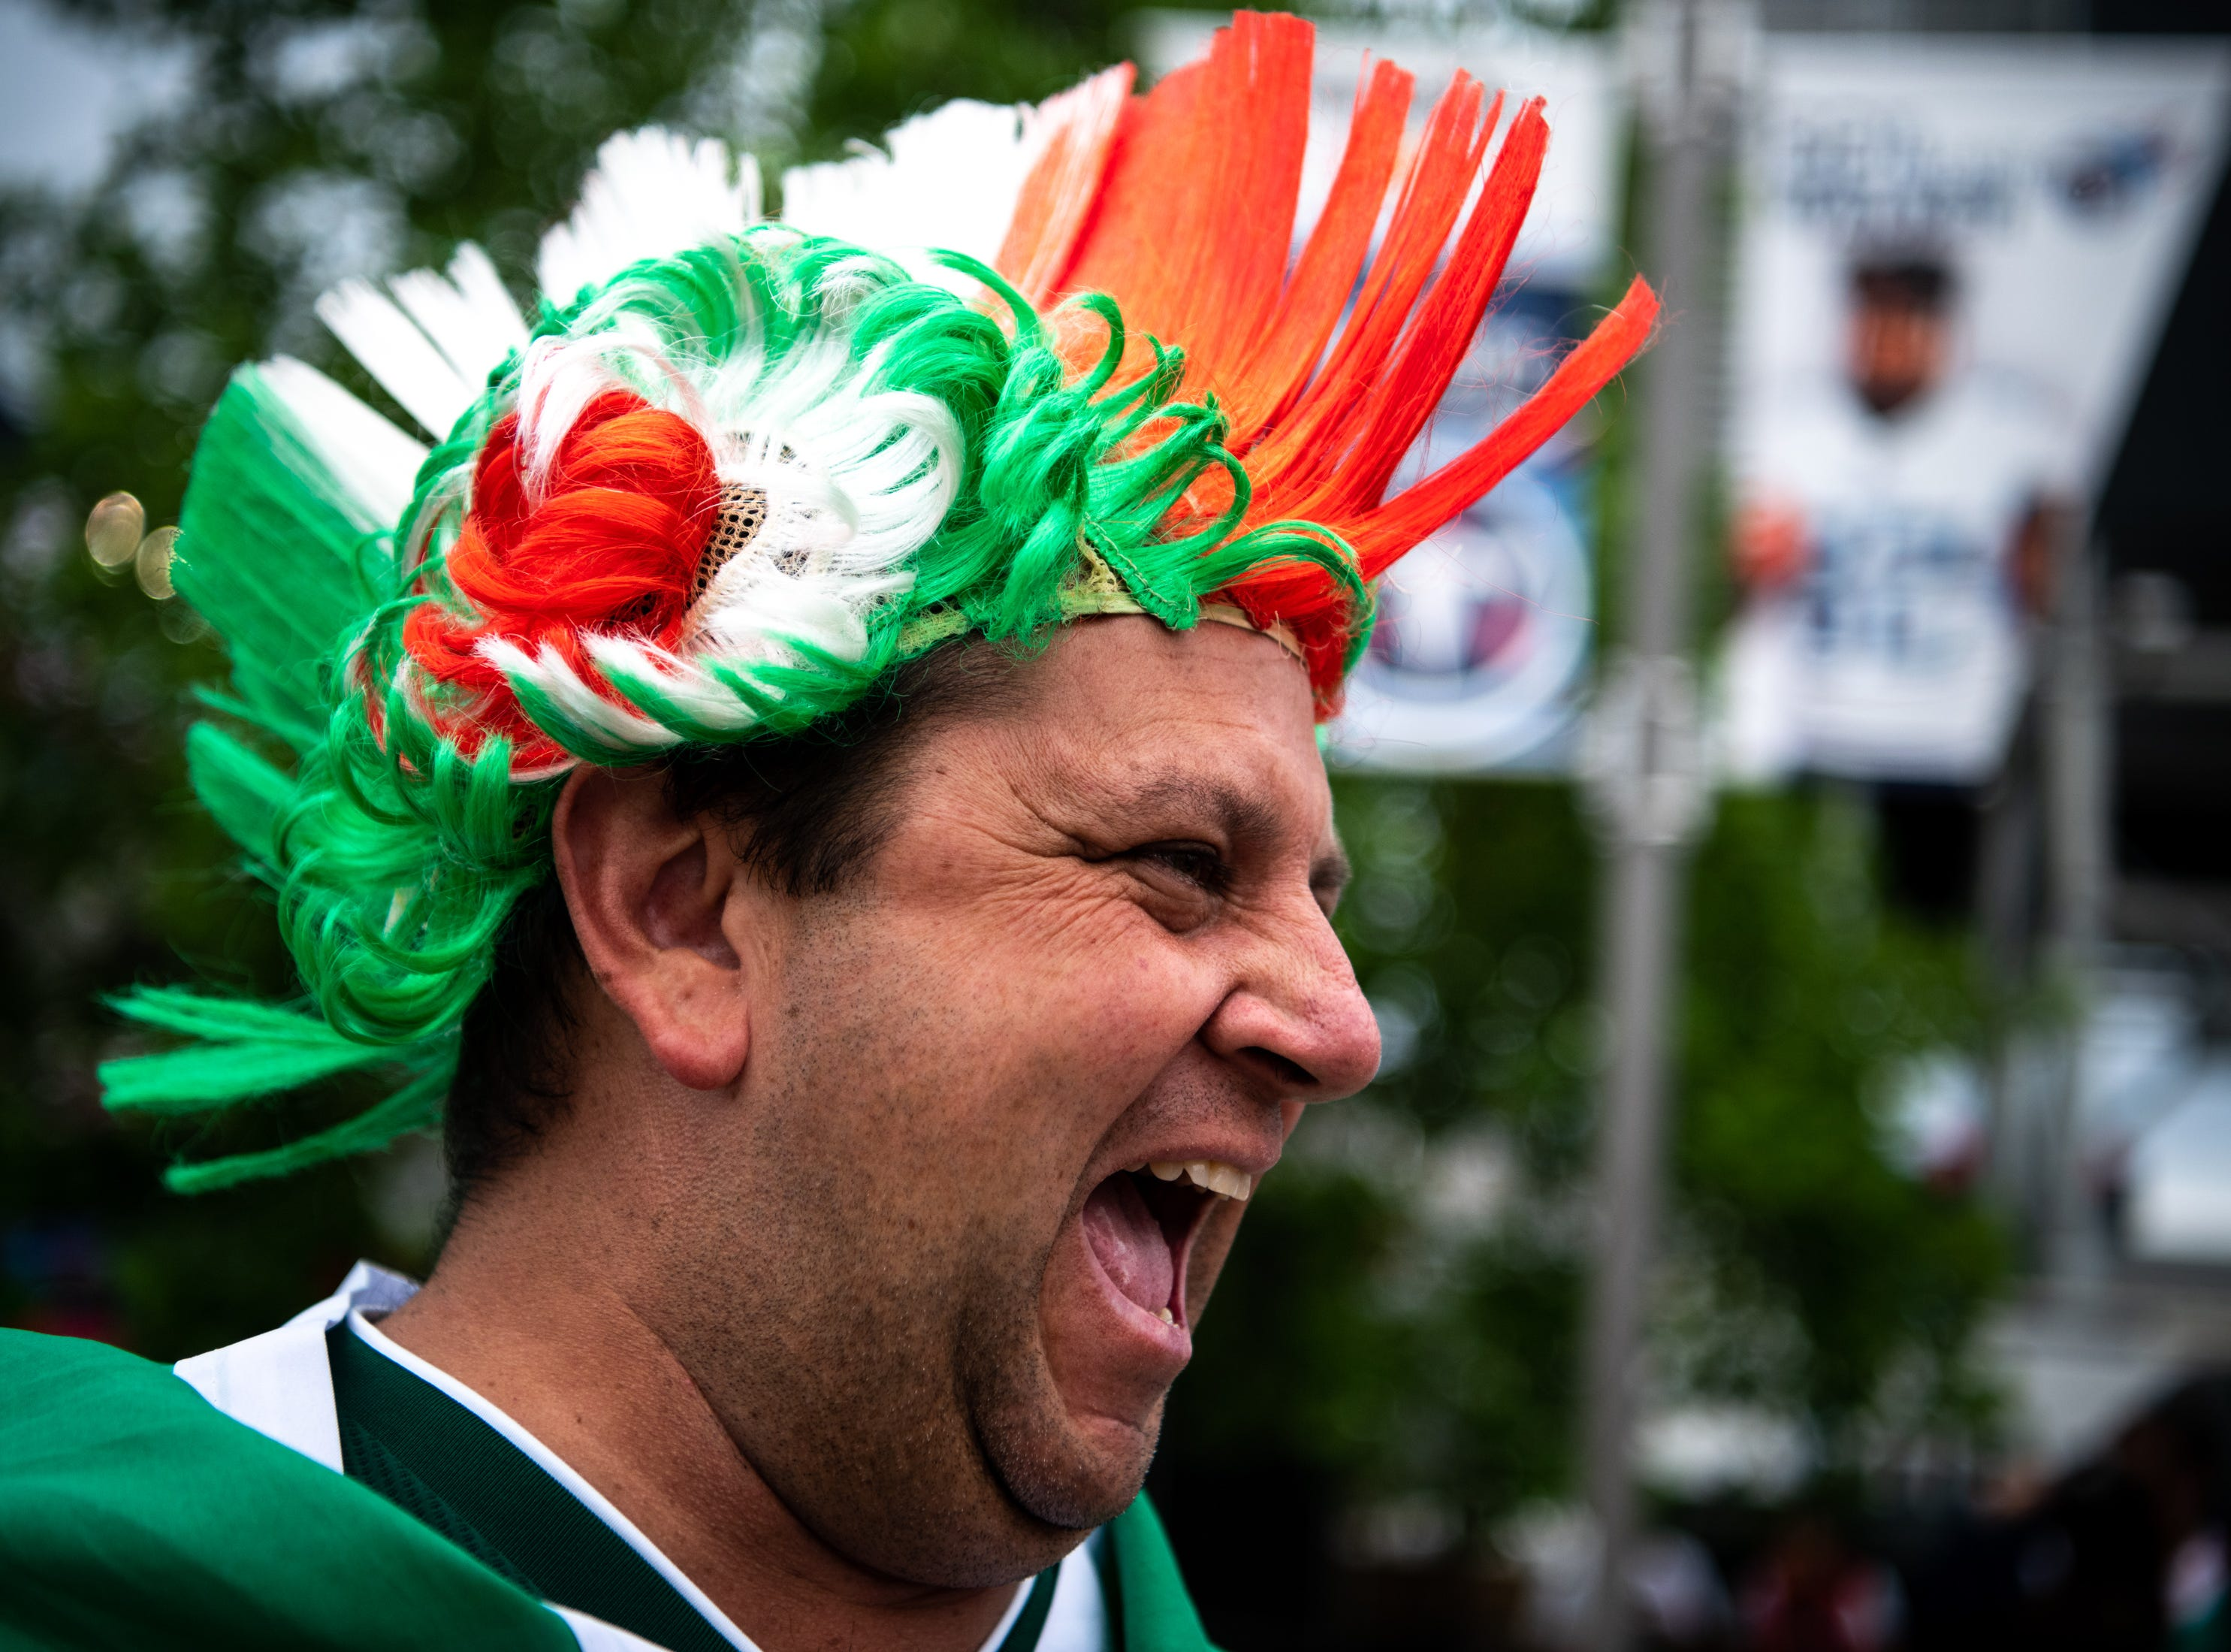 Patrick Canizares, of Orlando, Fla., cheers outside of the stadium before the game between USA and Mexico at Nissan Stadium in Nashville, Tenn., Tuesday, Sept. 11, 2018.